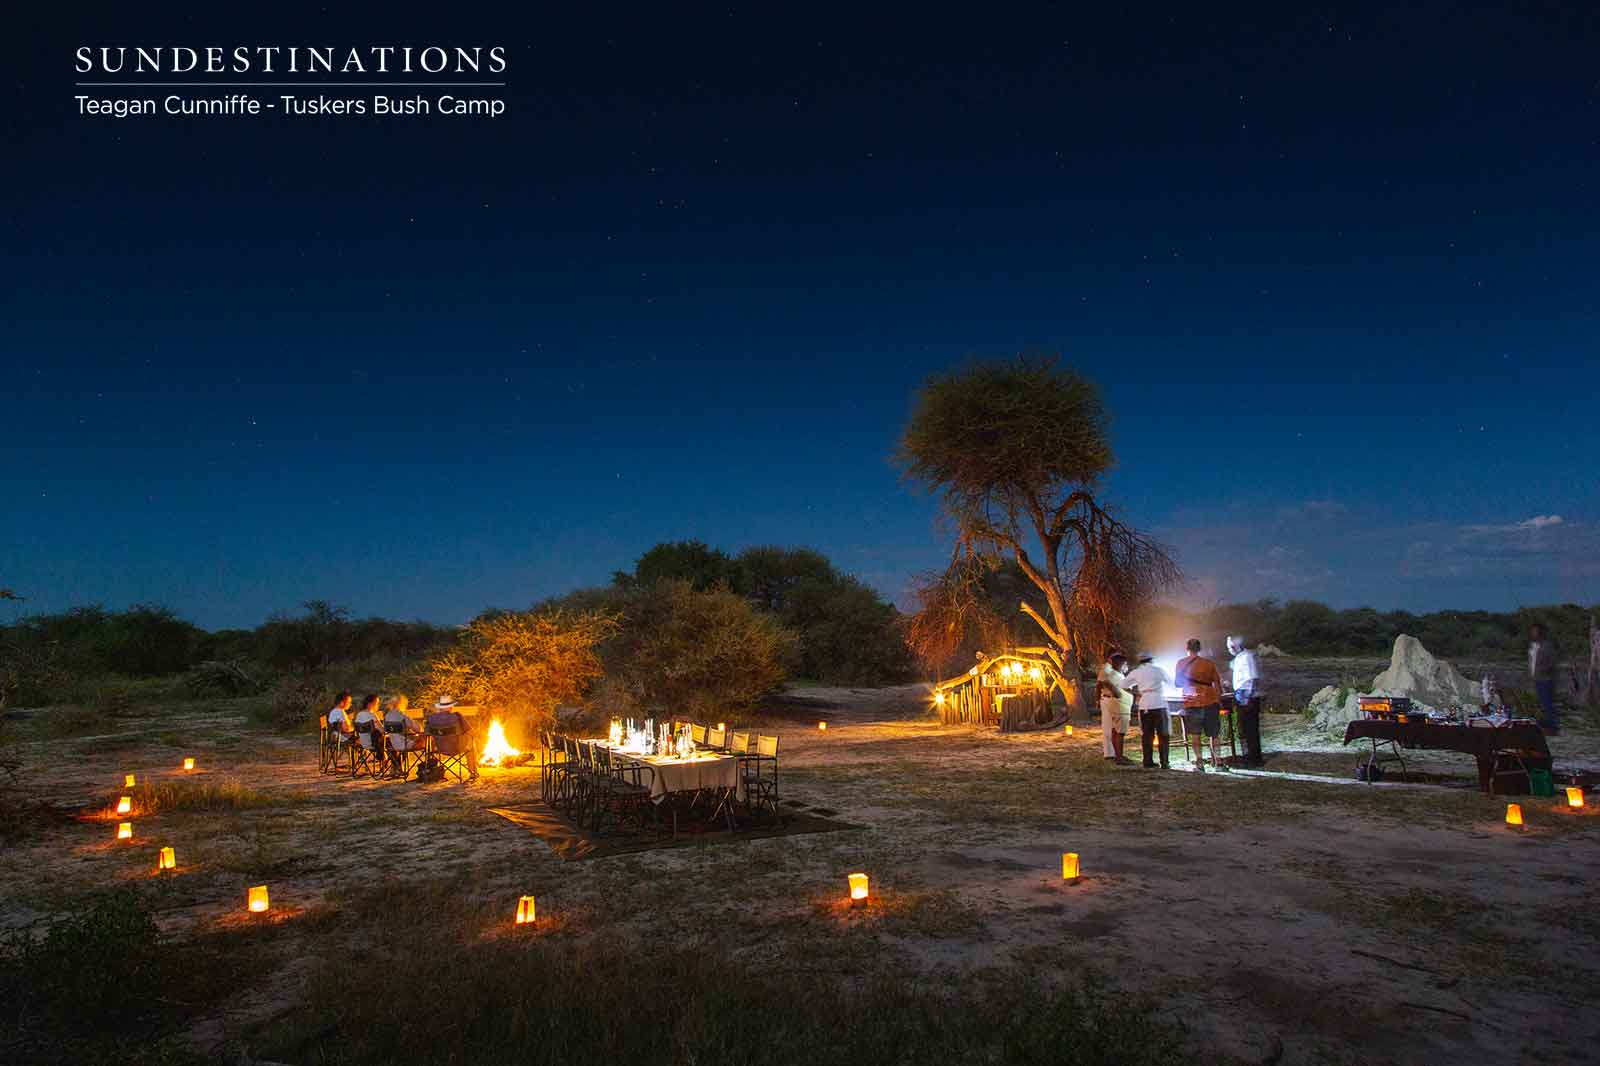 Wilderness at Tuskers Bush Camp